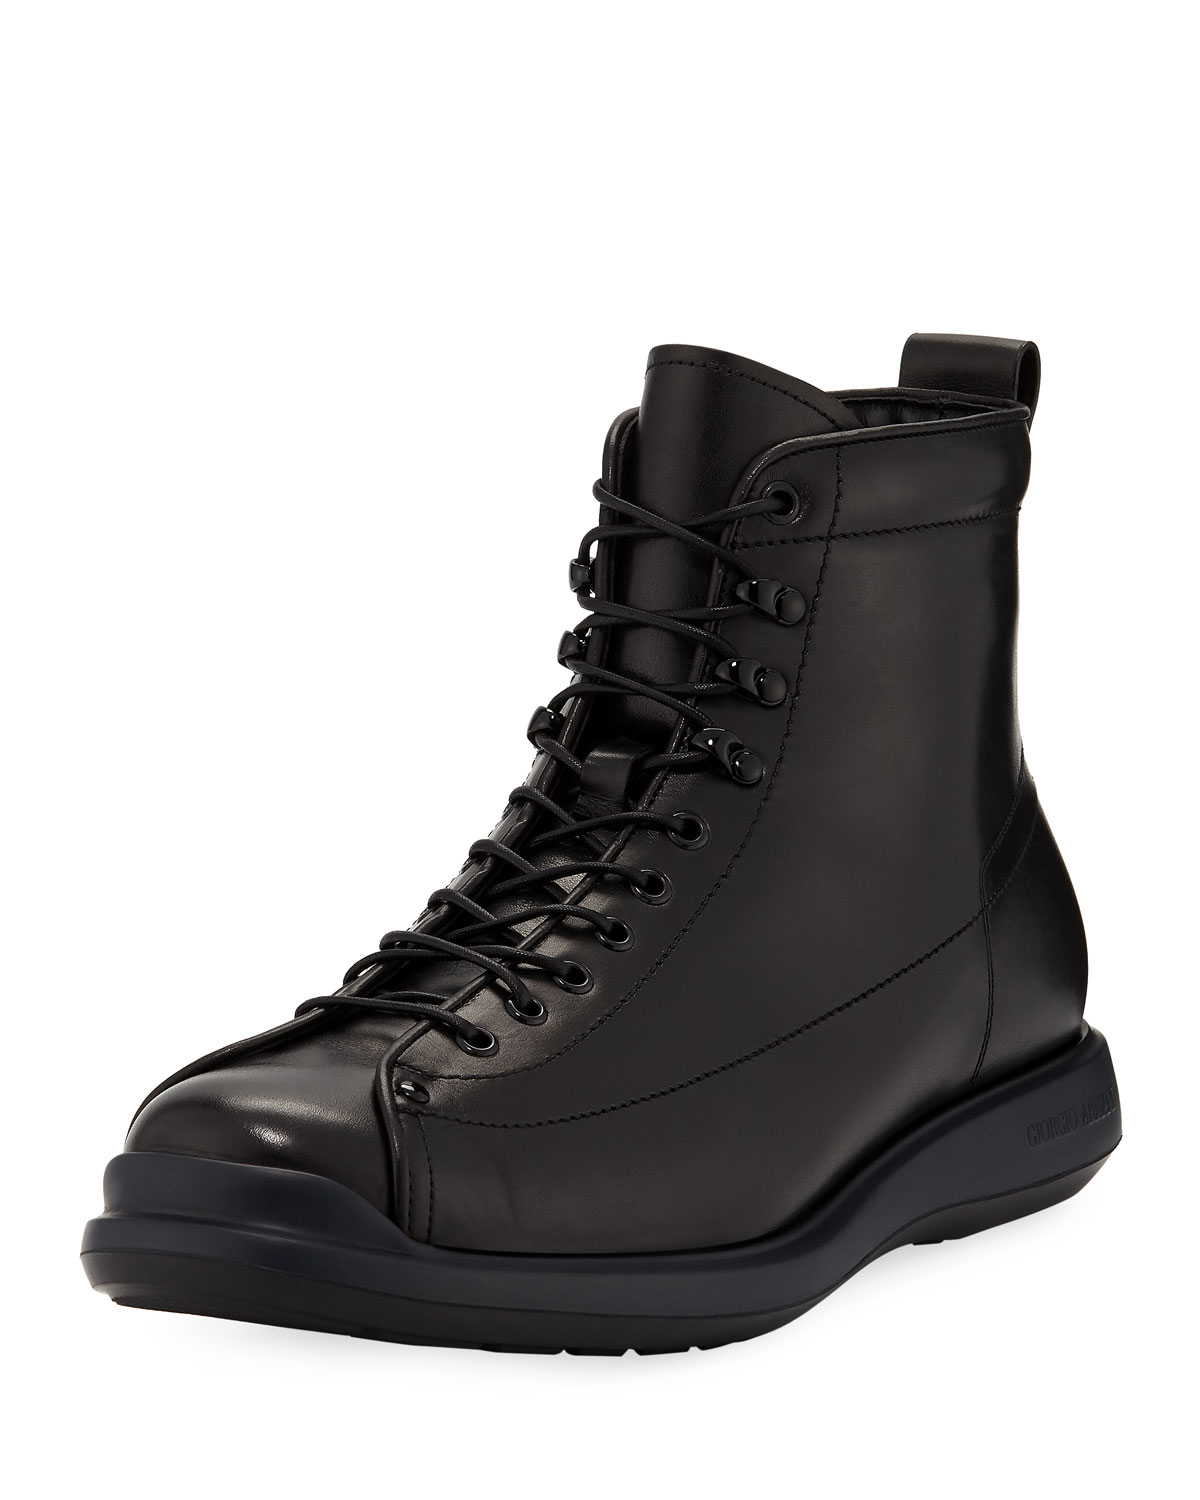 a9df6f794 Giorgio Armani Men's Milord Leather Lace-Up Boots | Neiman Marcus